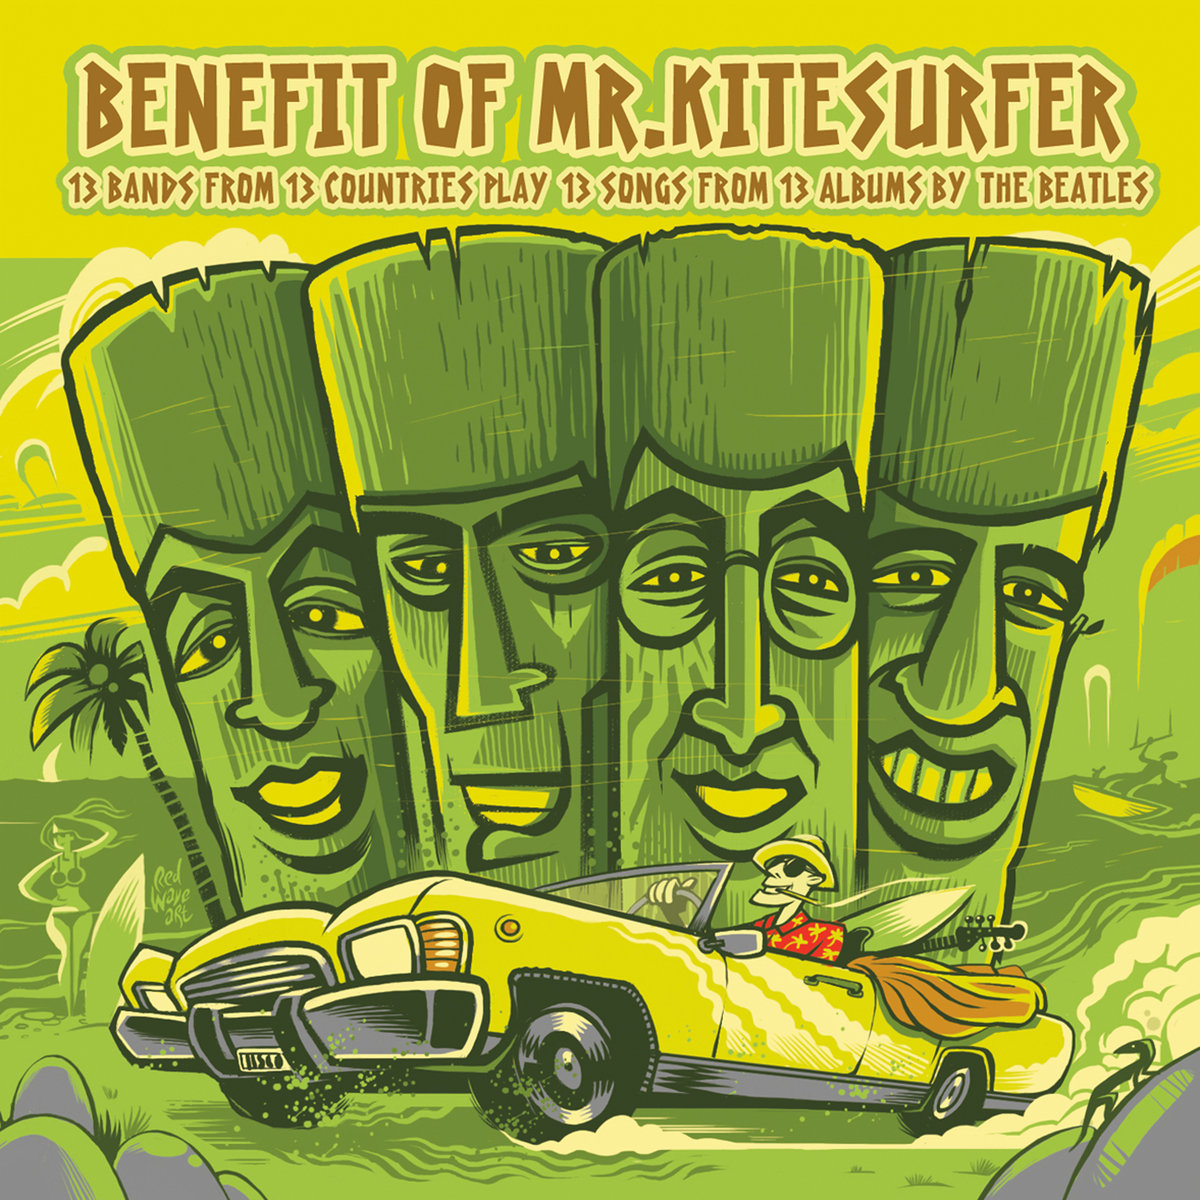 a1017913319_10 Various Artists 'Benefit Of Mr Kitesurfer' -  Sharawaji Records | Sharawaji.com